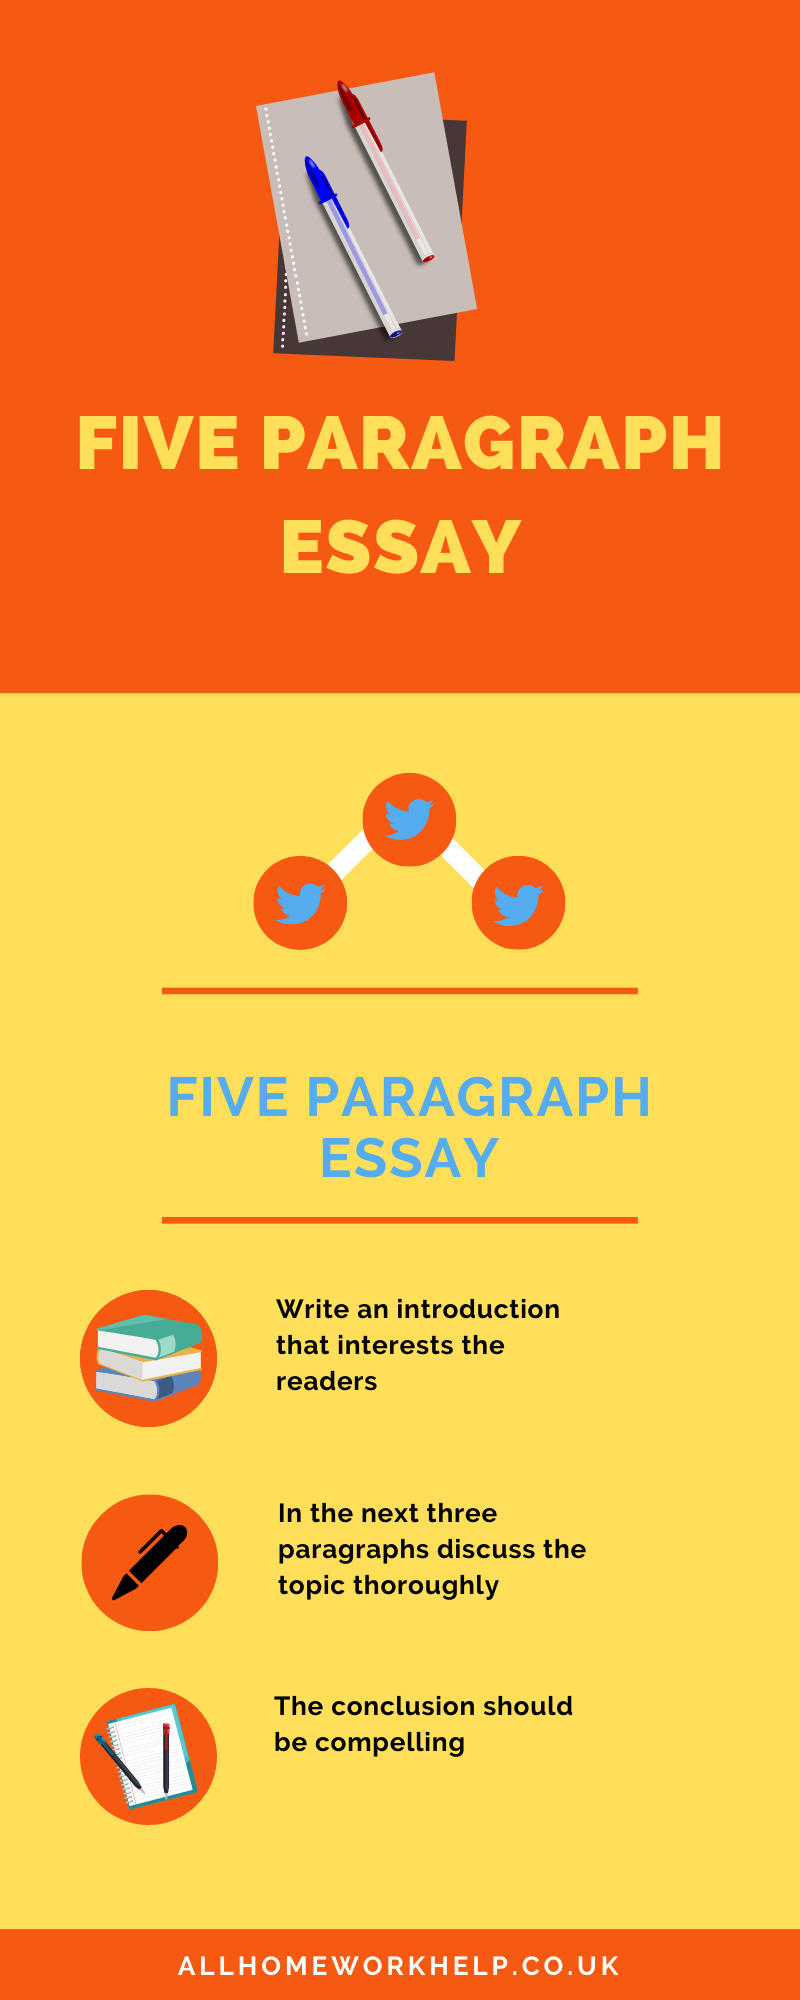 tips for writing five paragraph essay